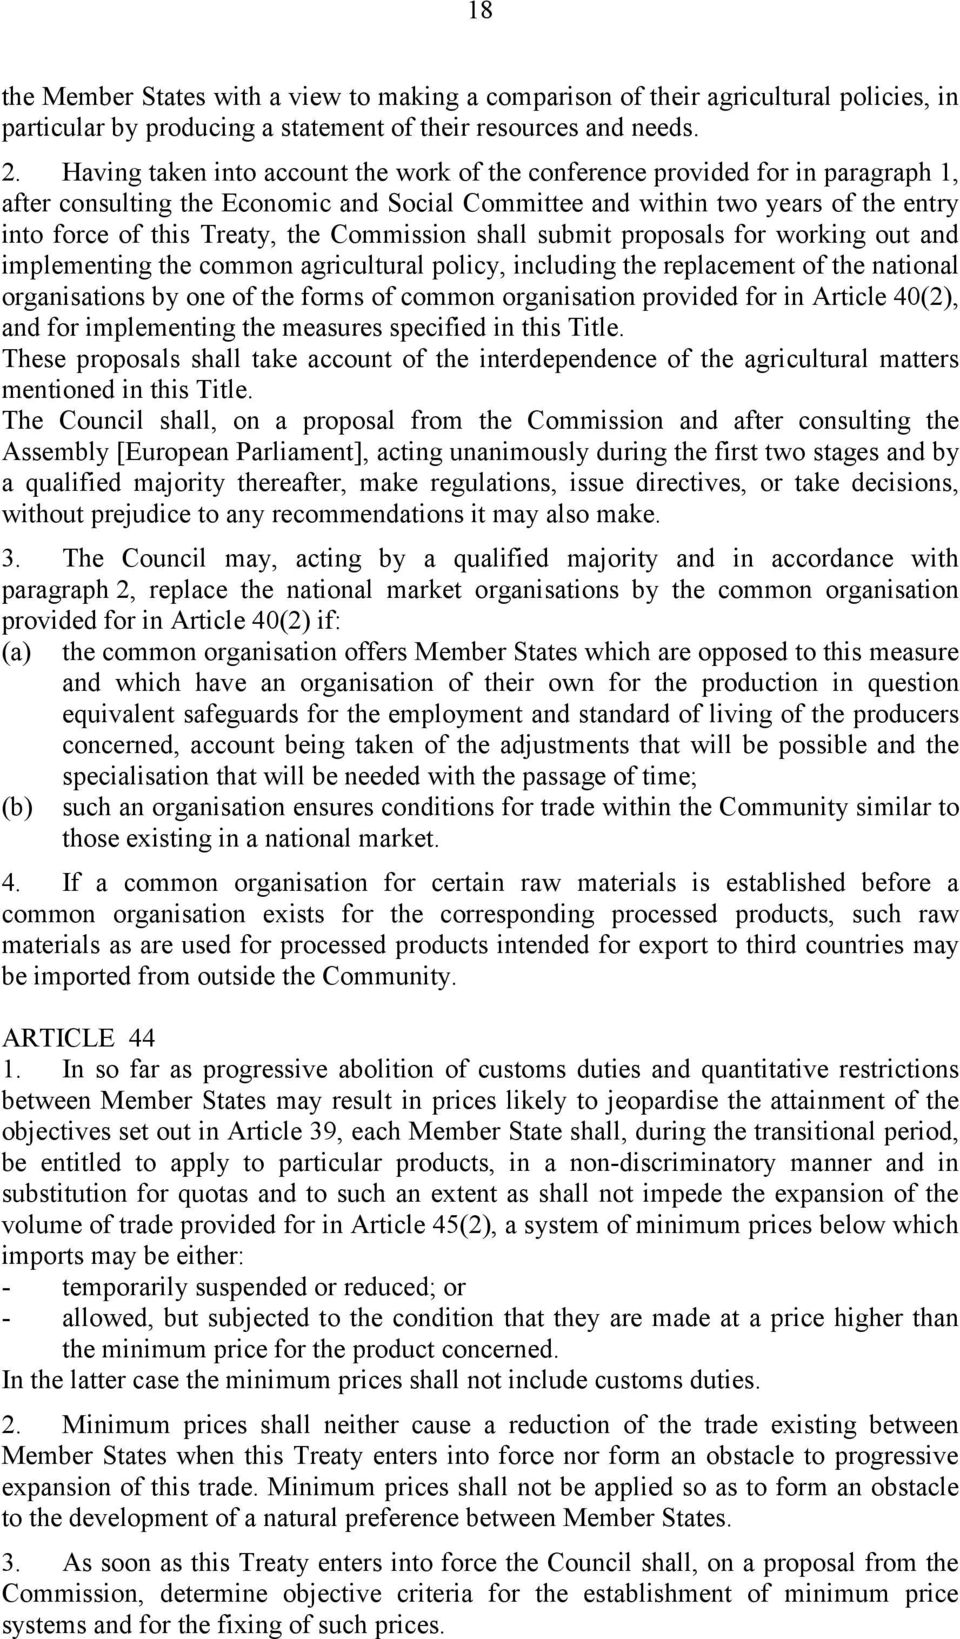 Commission shall submit proposals for working out and implementing the common agricultural policy, including the replacement of the national organisations by one of the forms of common organisation